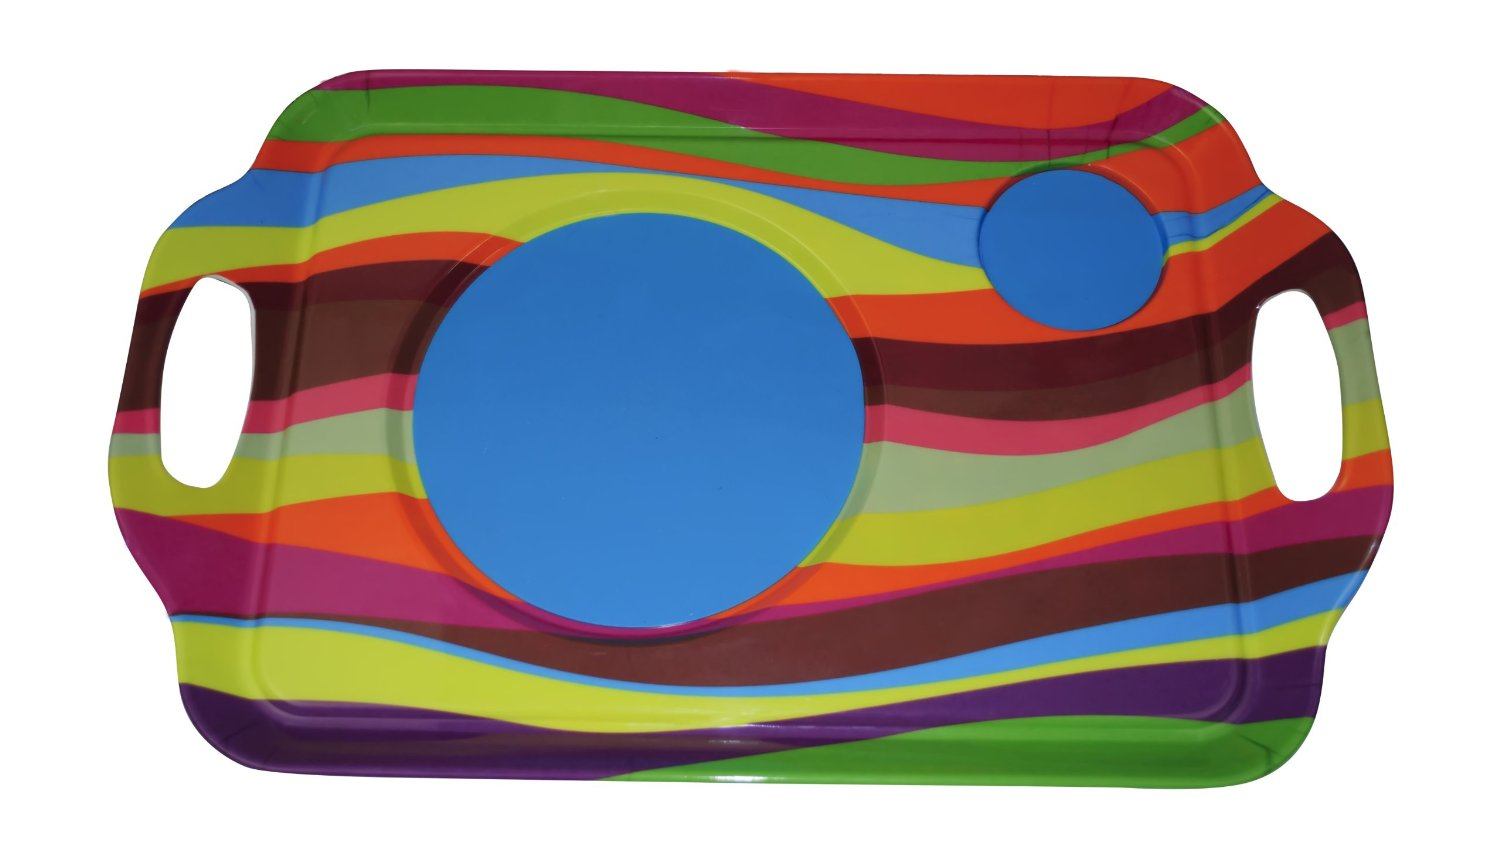 Lappers Tray 40102113 Image